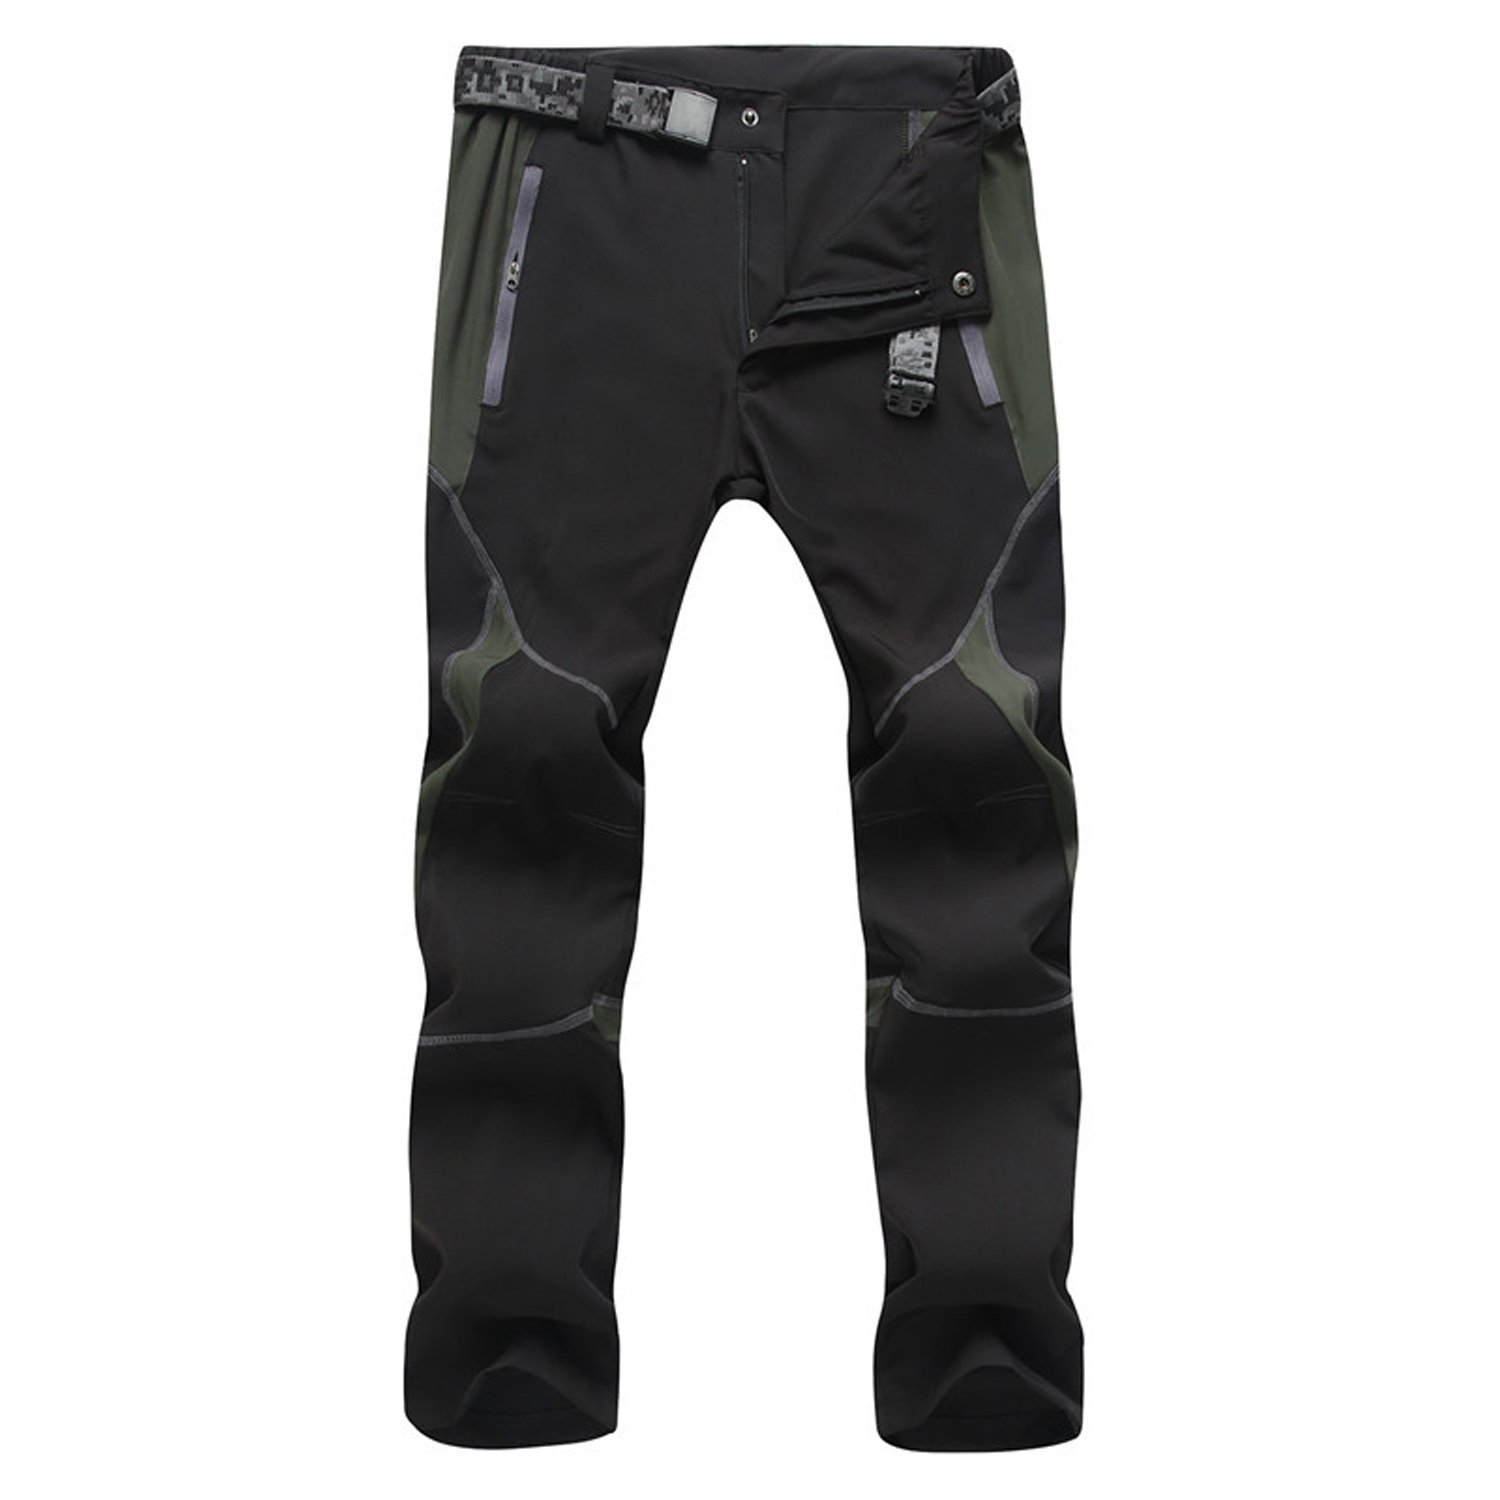 LUI SUI Mens Outdoor Quick Drying Hiking Pants Windproof Breathable Lightweight Trousers Moutain Climbing Cargo Walking Trousers